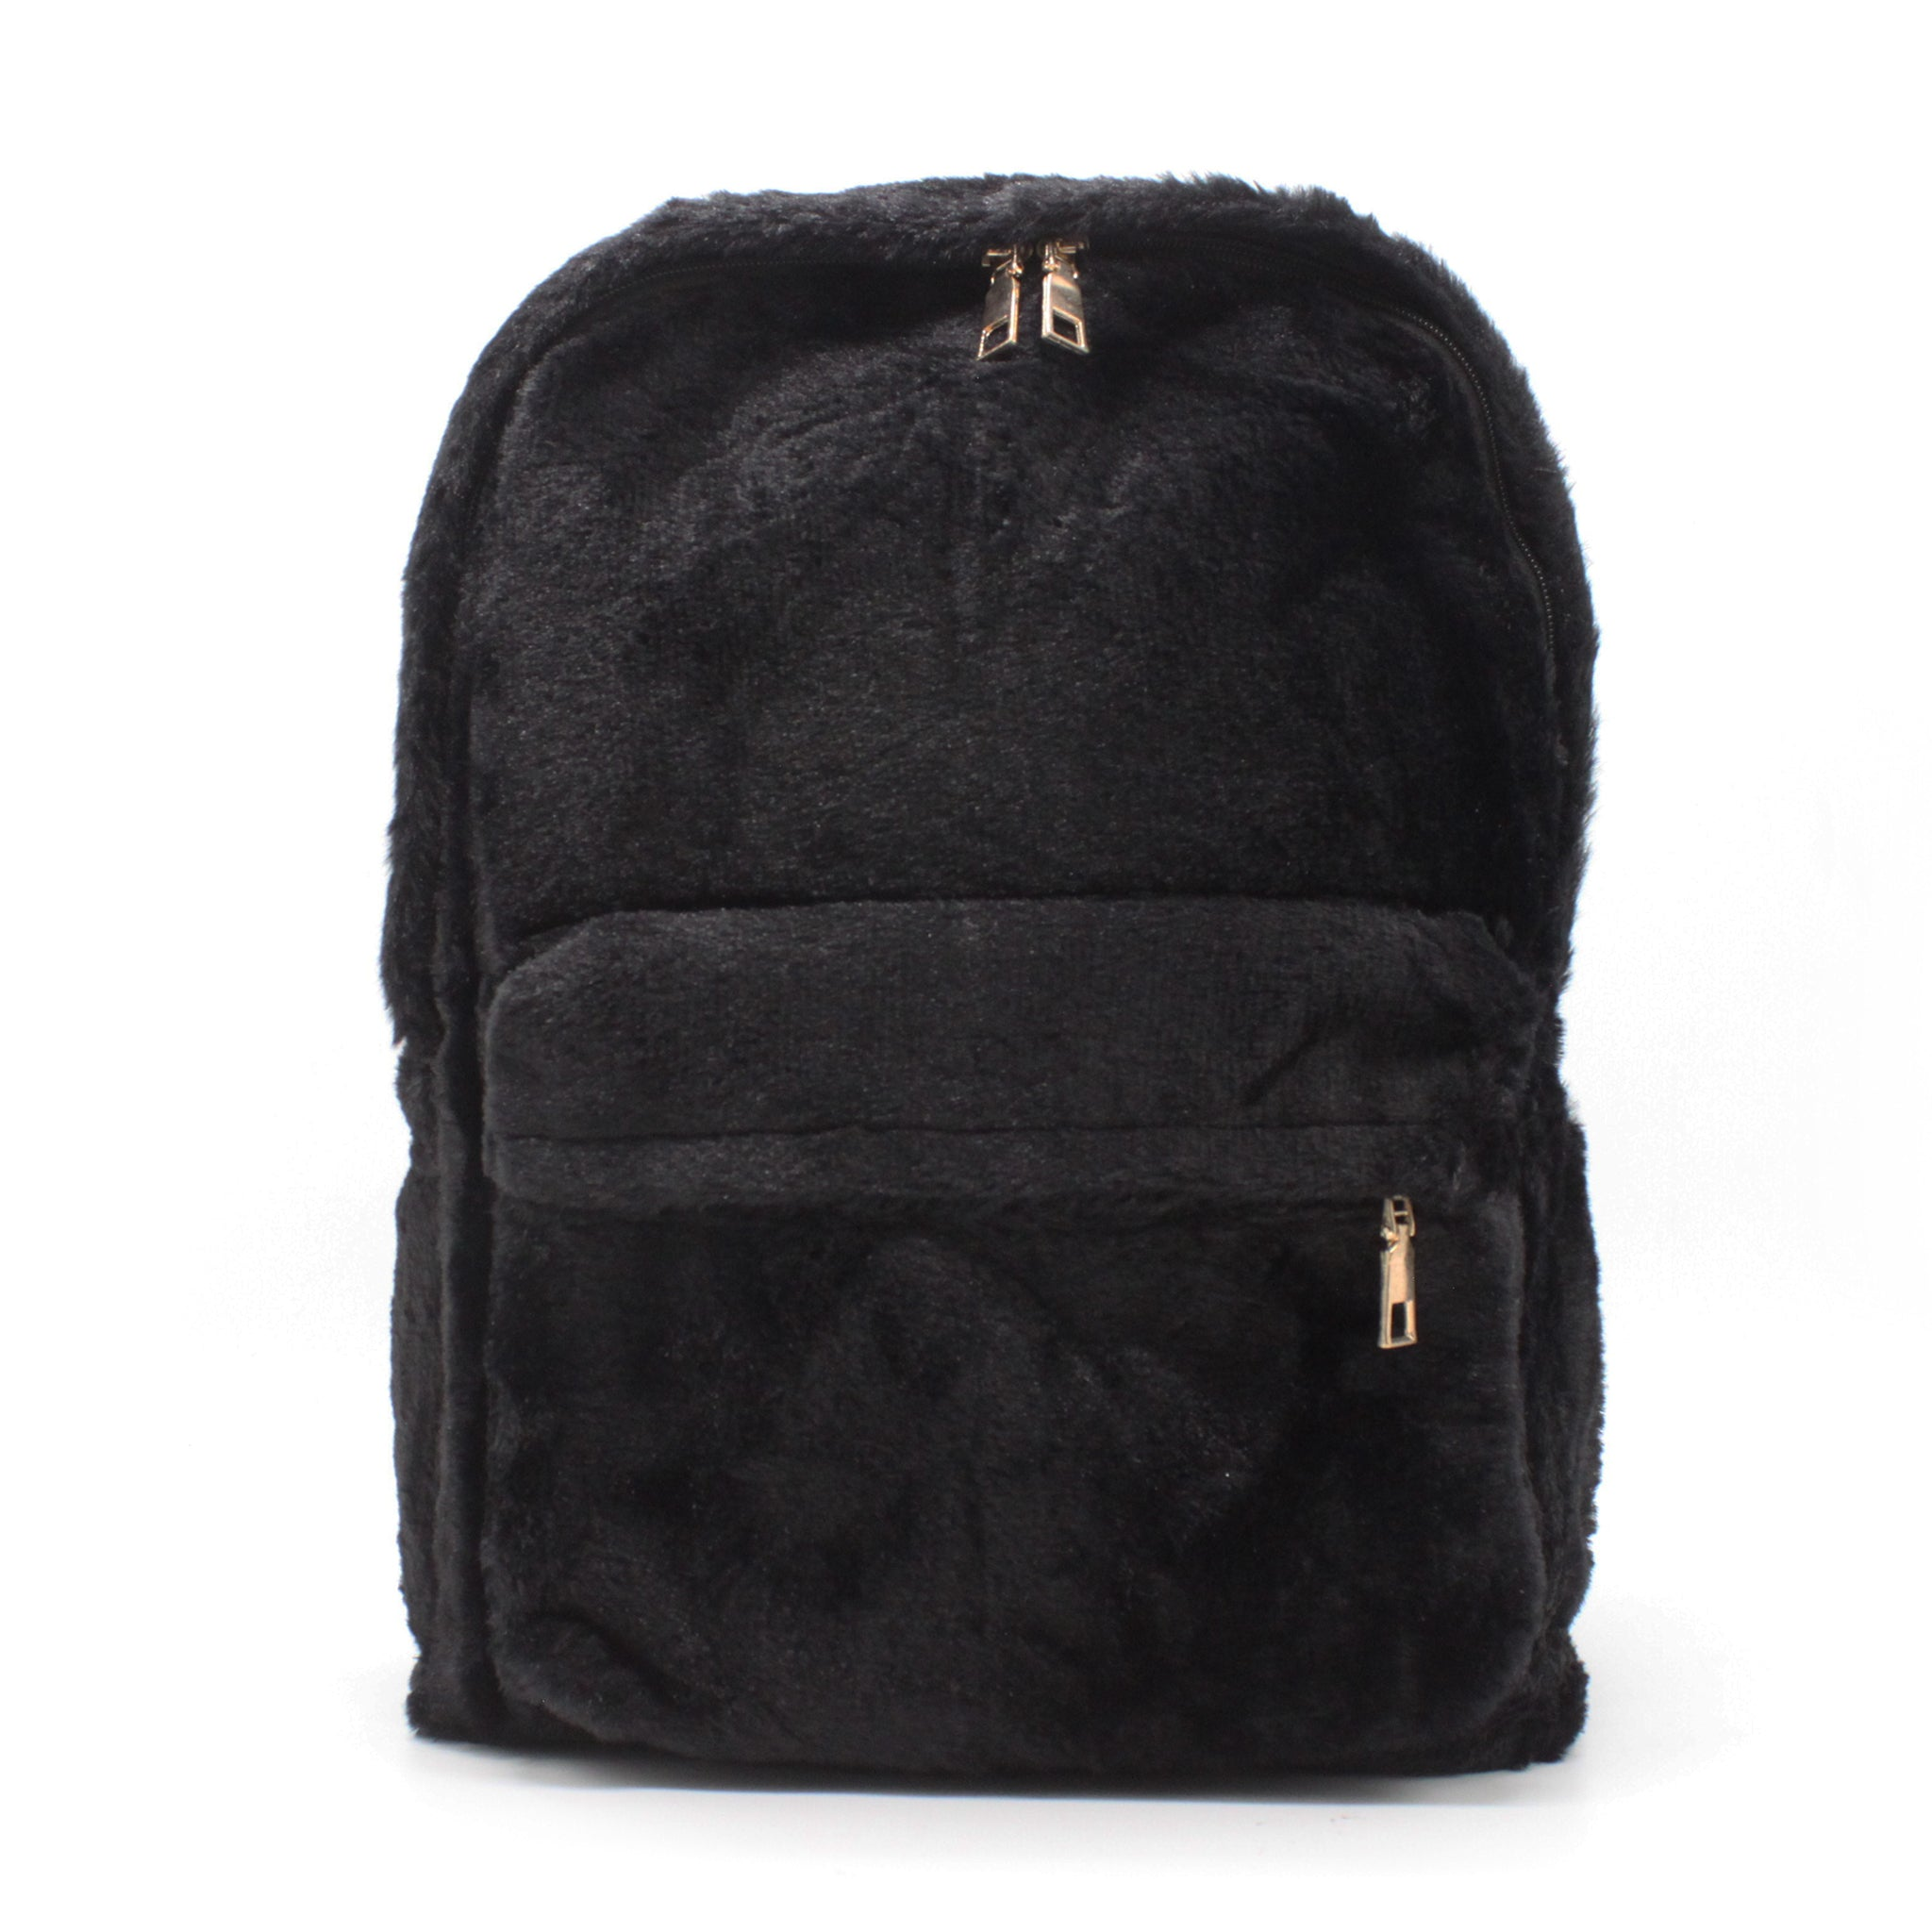 Fur Backpack - Black